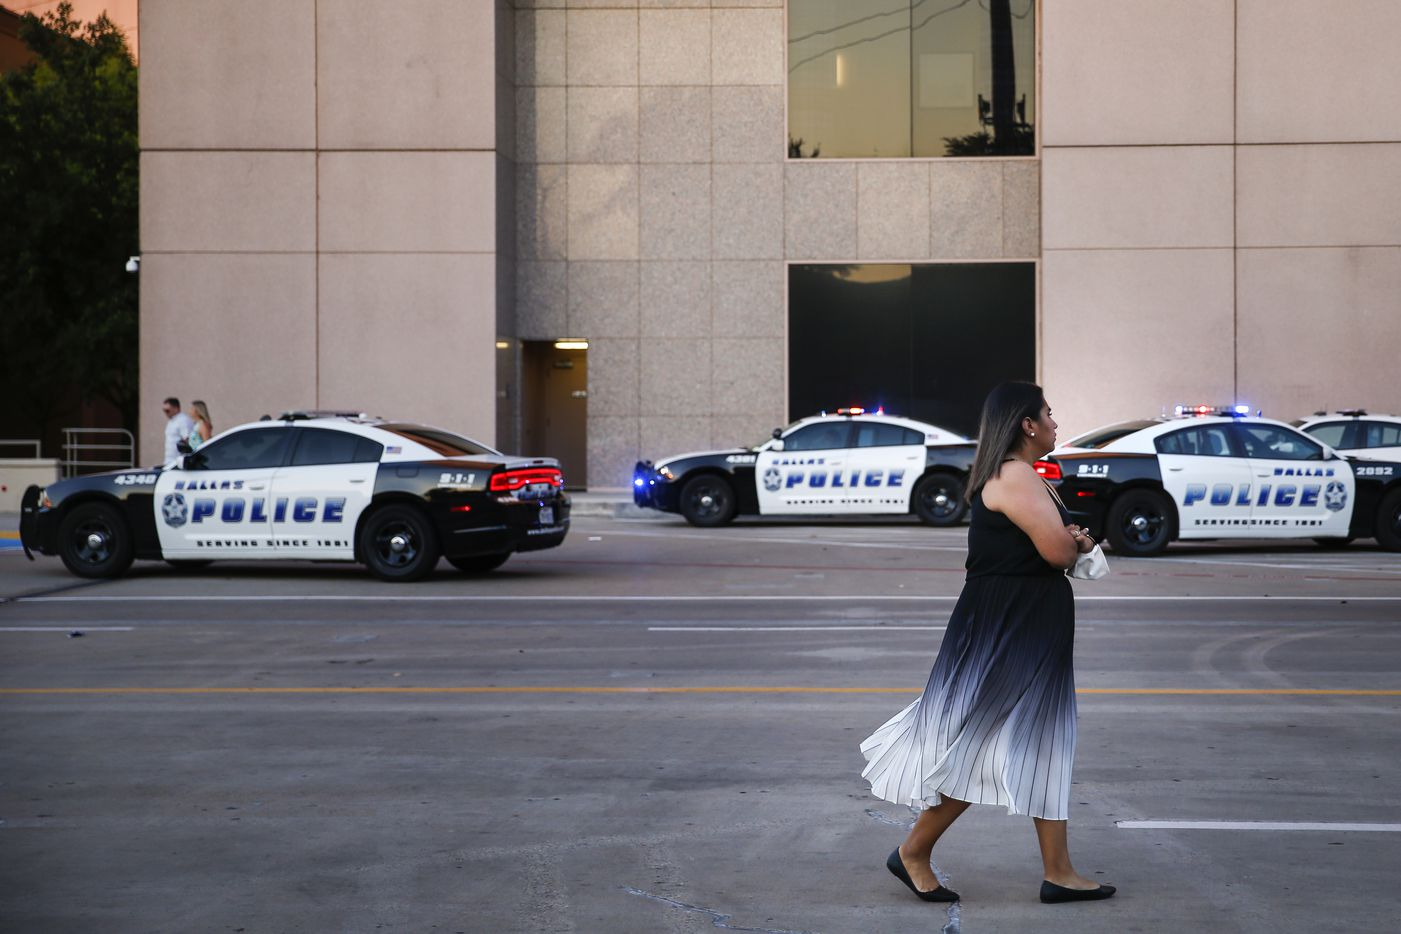 """A store employee, who wished to remain anonymous, waits outside to collect her belongings at Galleria Dallas mall, where a shooting was reported Tuesday, June 16, 2020 in Dallas. """"It happened all the sudden,"""" she said of what she witness from near the mall's Apple Store. """"We were getting ready to close and we heard a loud boom. Then we heard like ten shots so we rushed to our back room. You could hear it so clear, like just a ton of books falling."""""""